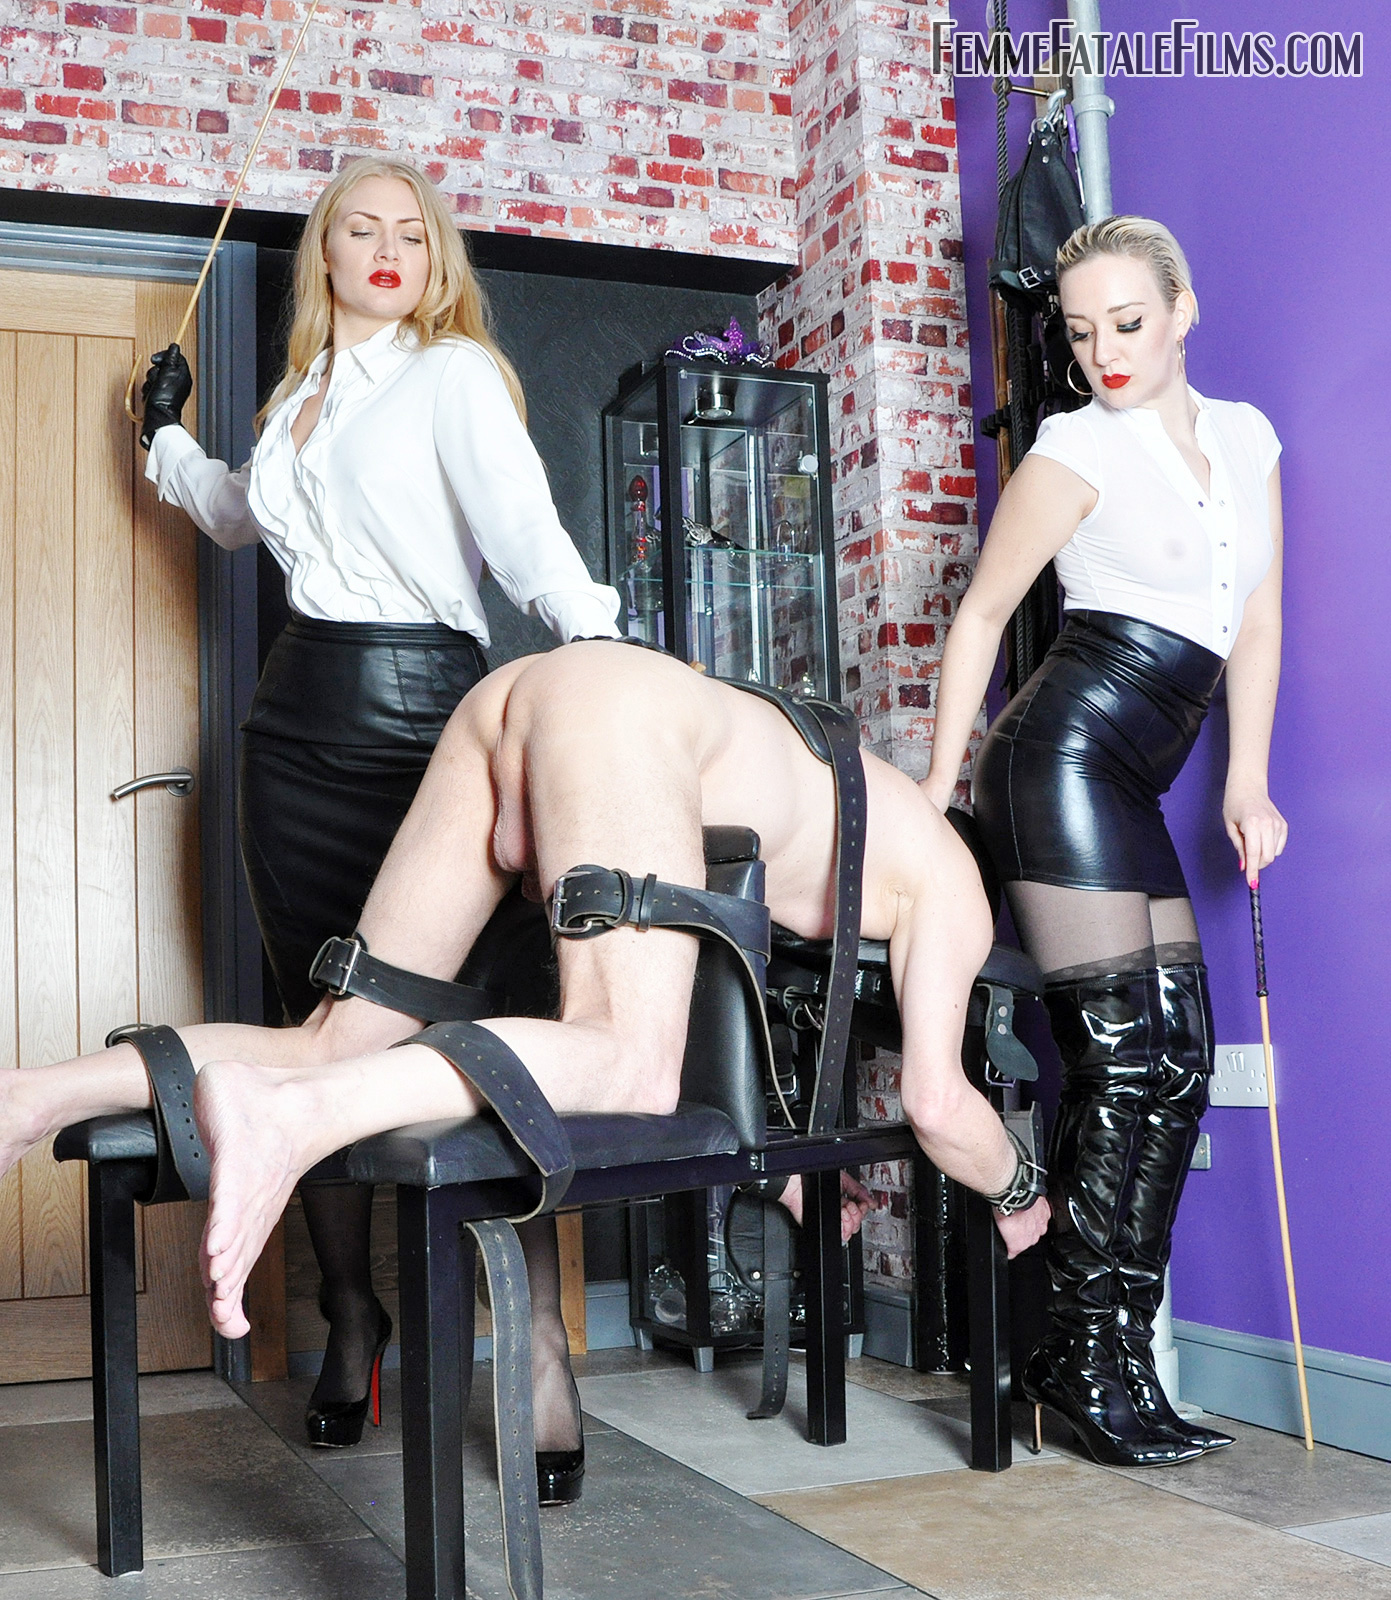 Double Domme Caning not knowing how many strokes you will get of the dreaded cane, not knowing when your punishment will end